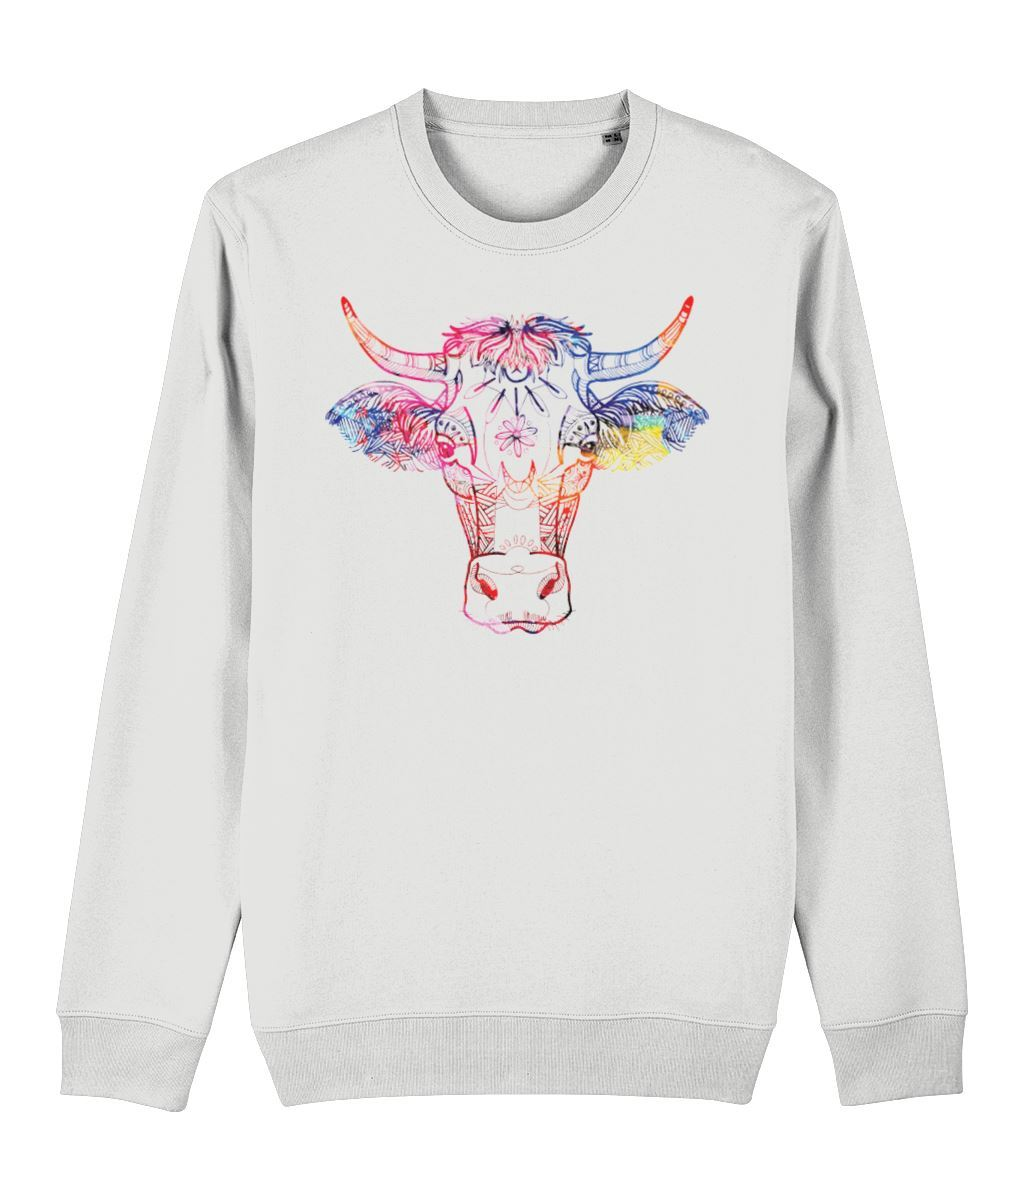 Ethnic Cow Sweatshirt Clothing IndianBelieves White X-Small